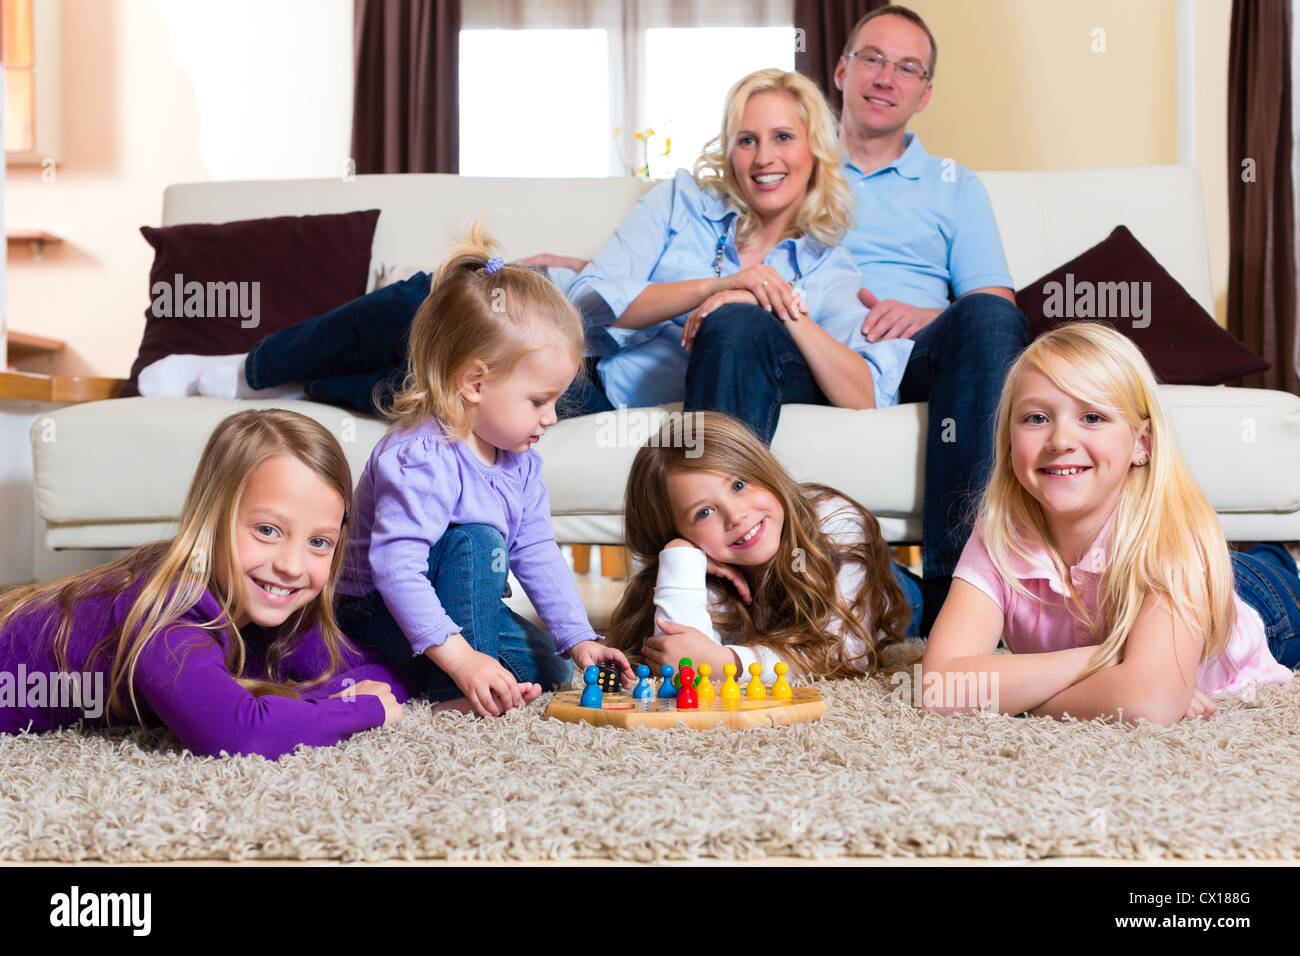 Family playing board game ludo at home on the floor Stock Photo